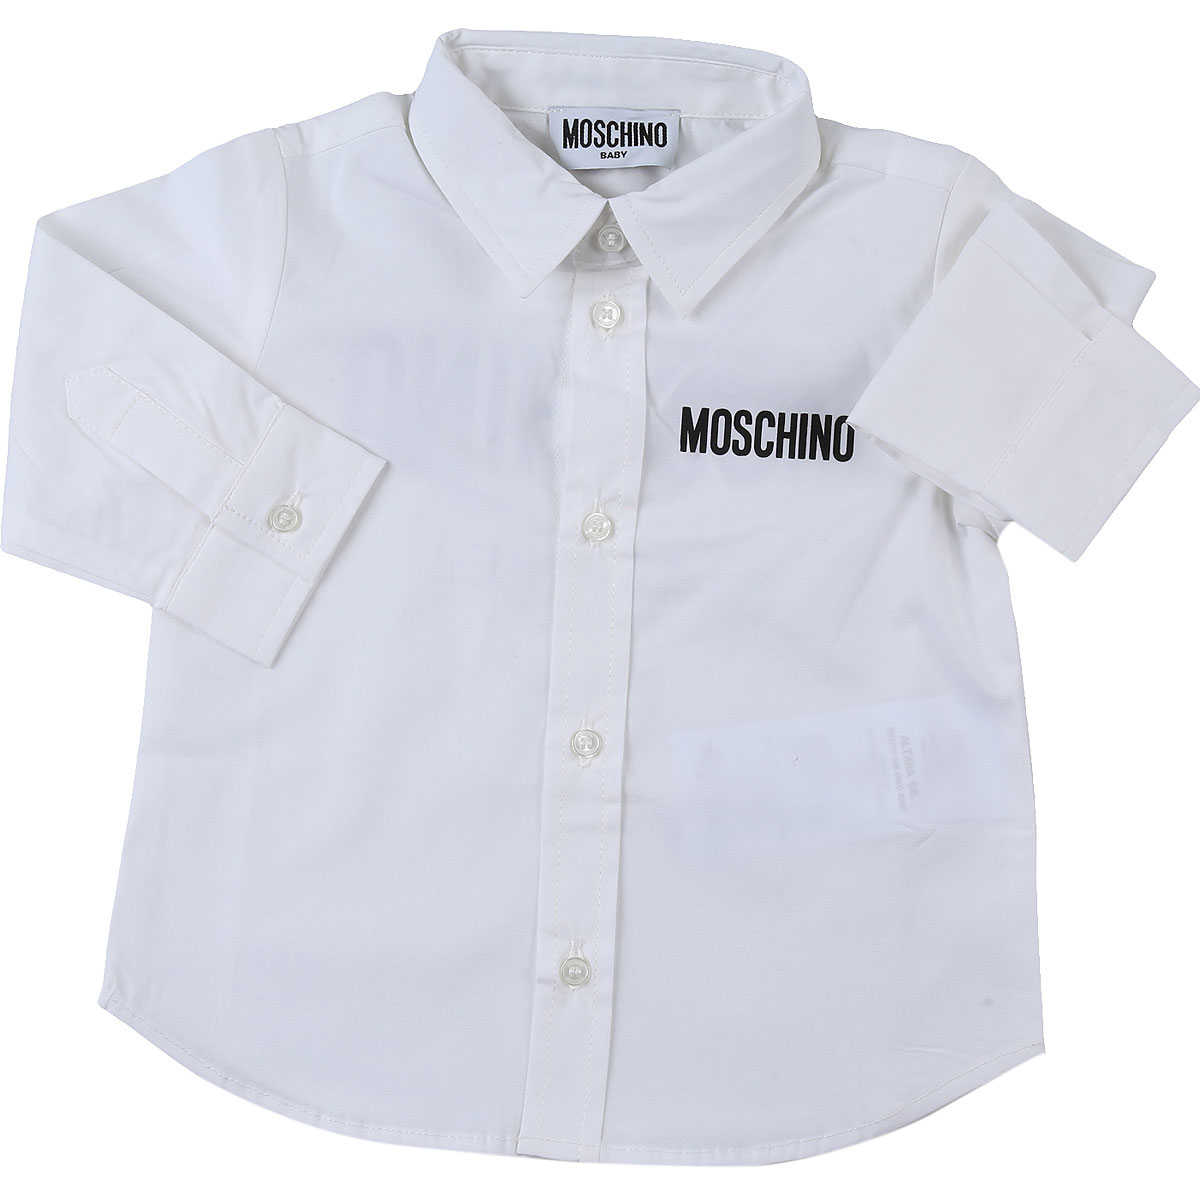 Moschino Baby Shirts for Boys White USA - GOOFASH